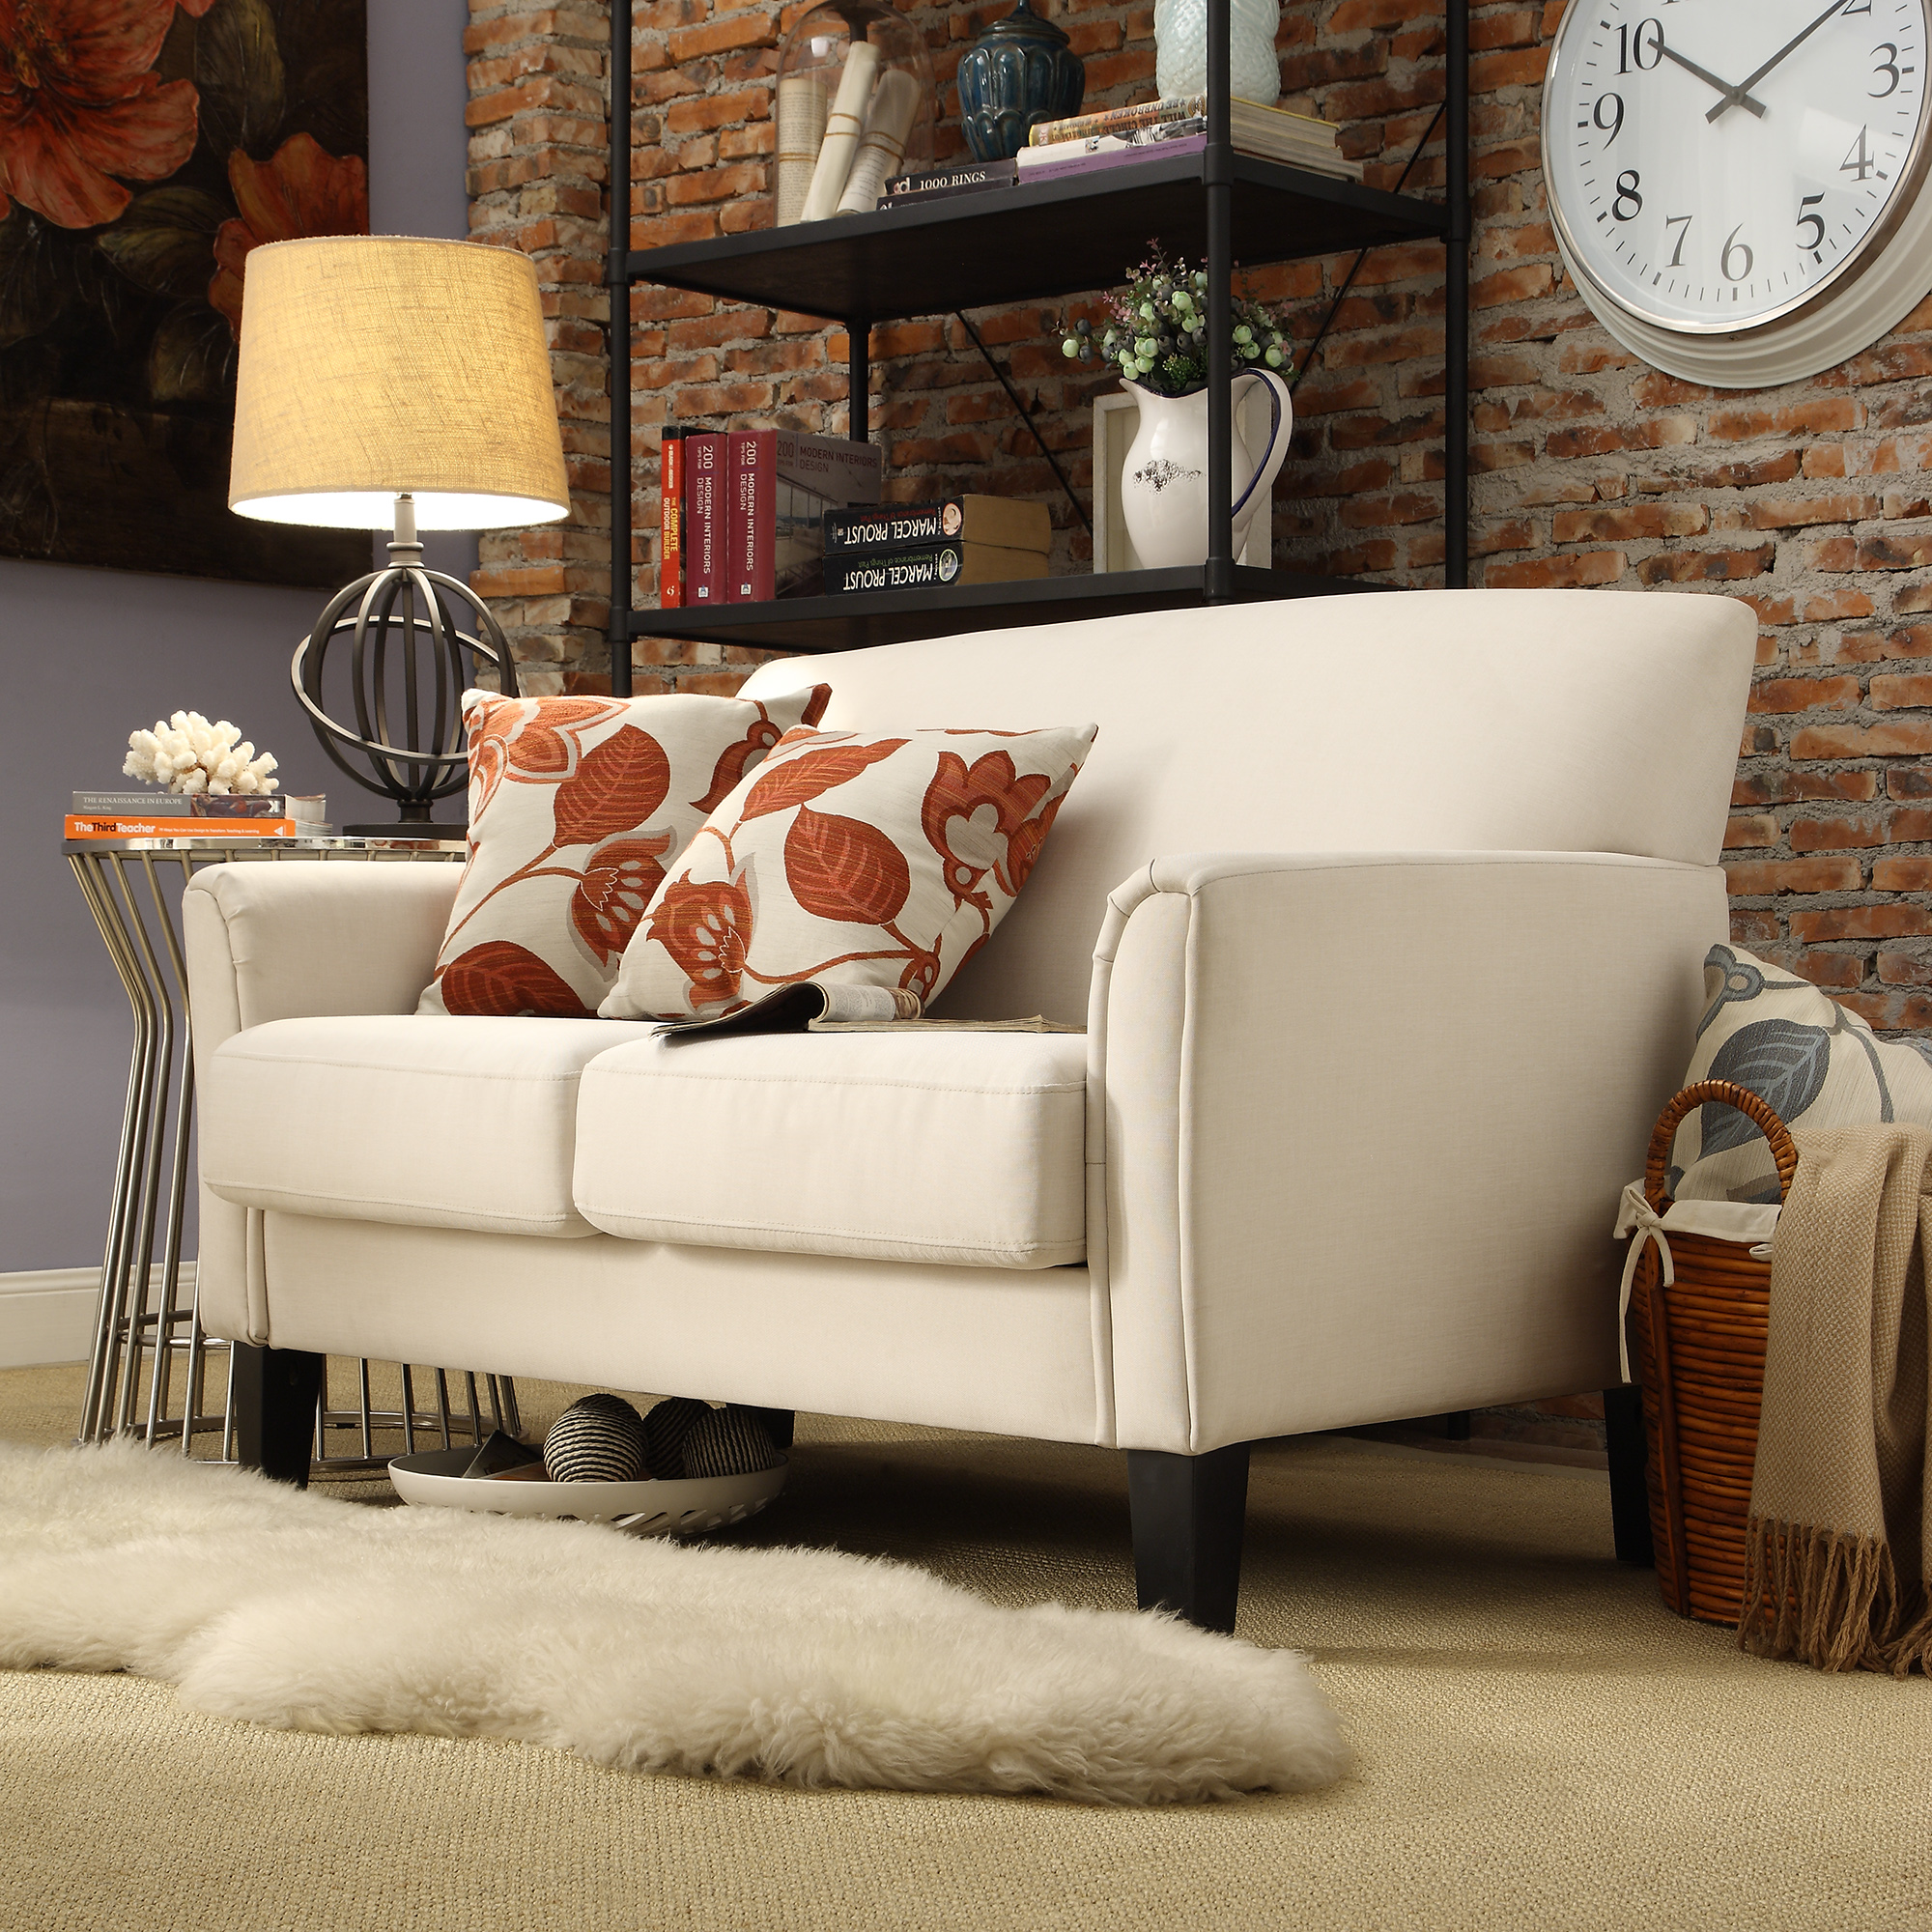 Weston Home Tribeca Living Room Loveseat with Espresso Feet, White Linen Loveseat